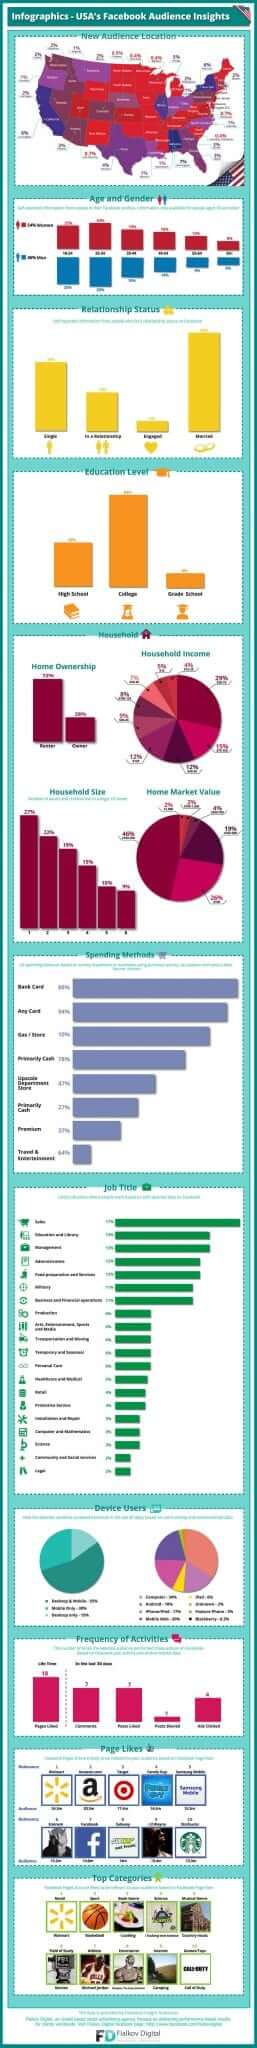 infographics-usas-facebook-audience-insights